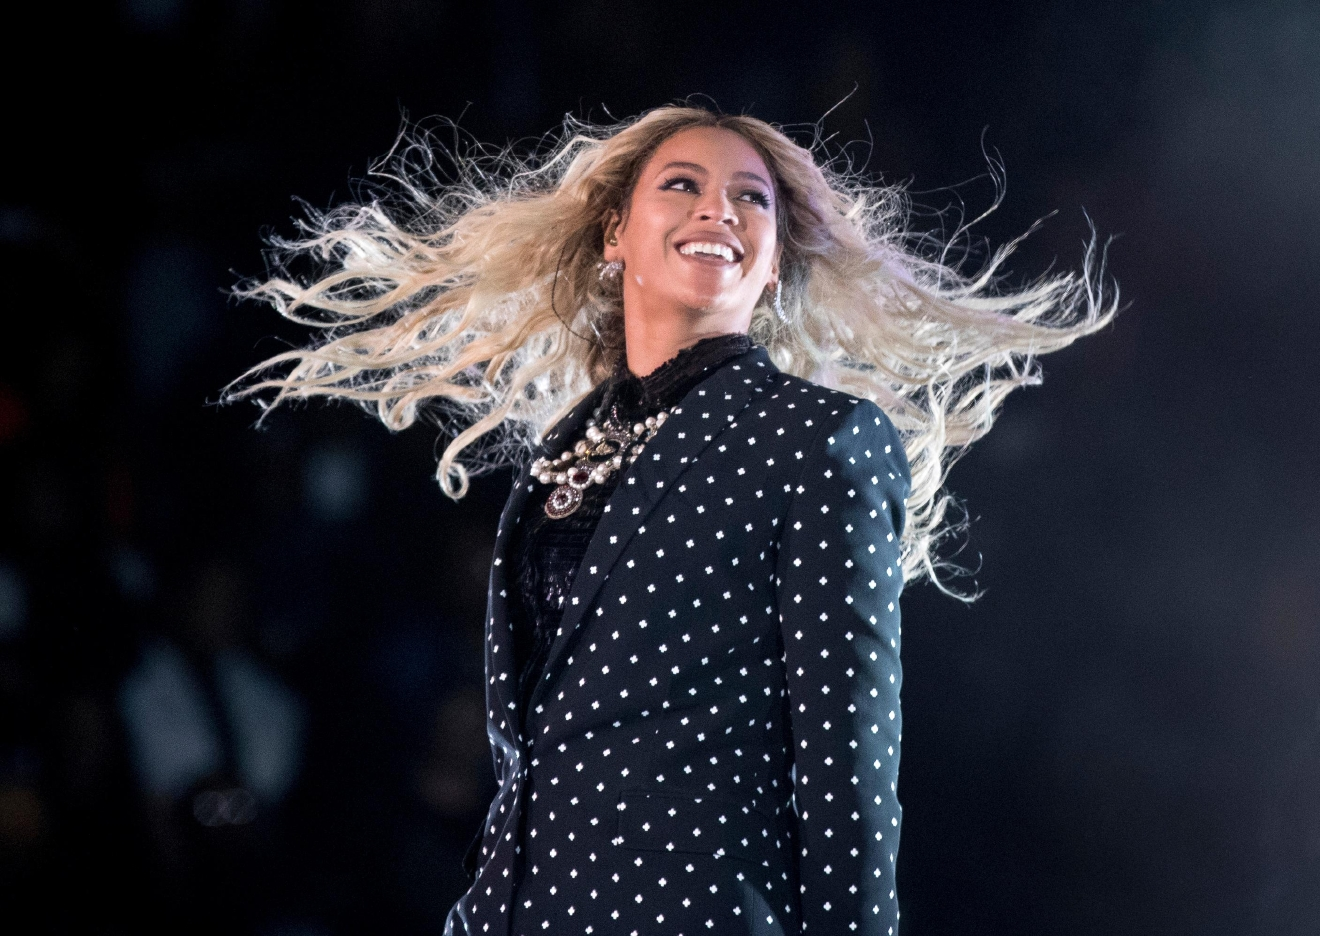 "FILE - In this Nov. 4, 2016 file photo, Beyonce performs at a Get Out the Vote concert for Democratic presidential candidate Hillary Clinton in Cleveland. The pop star is the leader of the 2017 Grammys with nine nominations, including bids for album of the year with ""Lemonade,"" and song and record of the year with ""Formation,"" announced Tuesday, Dec. 6. The singer, who already has 20 Grammys, is also the first artist to earn nominations in the pop, rock, R&B and rap categories in the same year. (AP Photo/Andrew Harnik, File)"